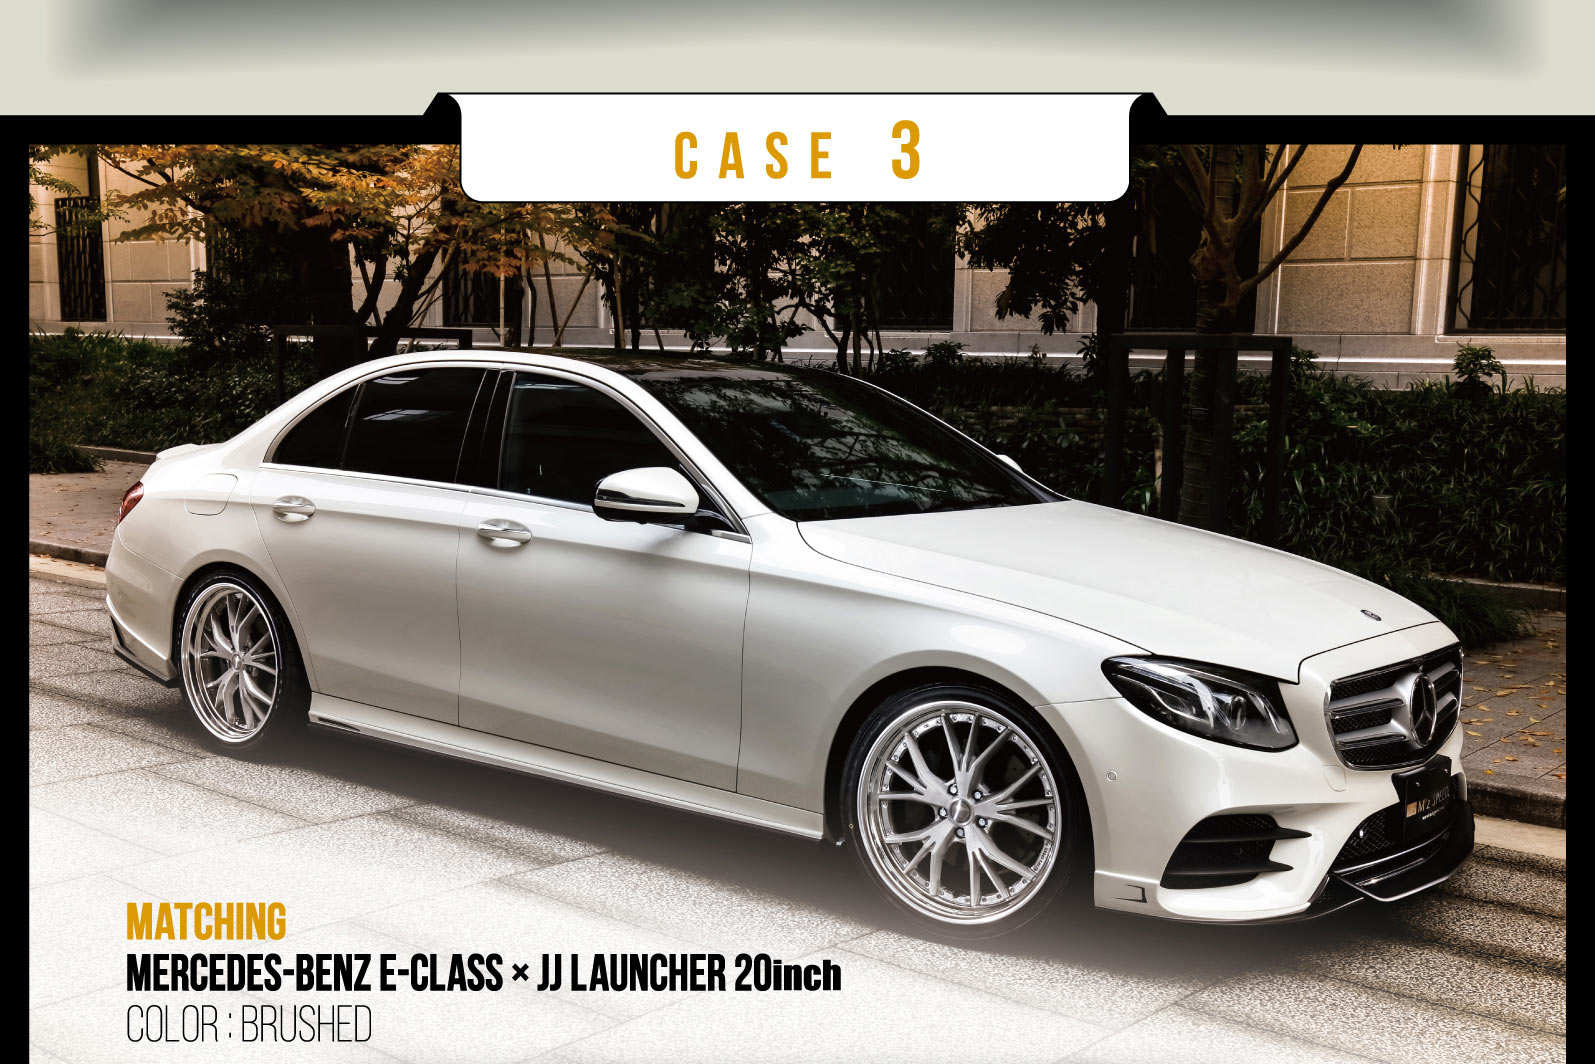 CASE 3 MATCHING Mercedes-Benz E-Class × JJ Launcher 20inch COLOR : BRUSHED